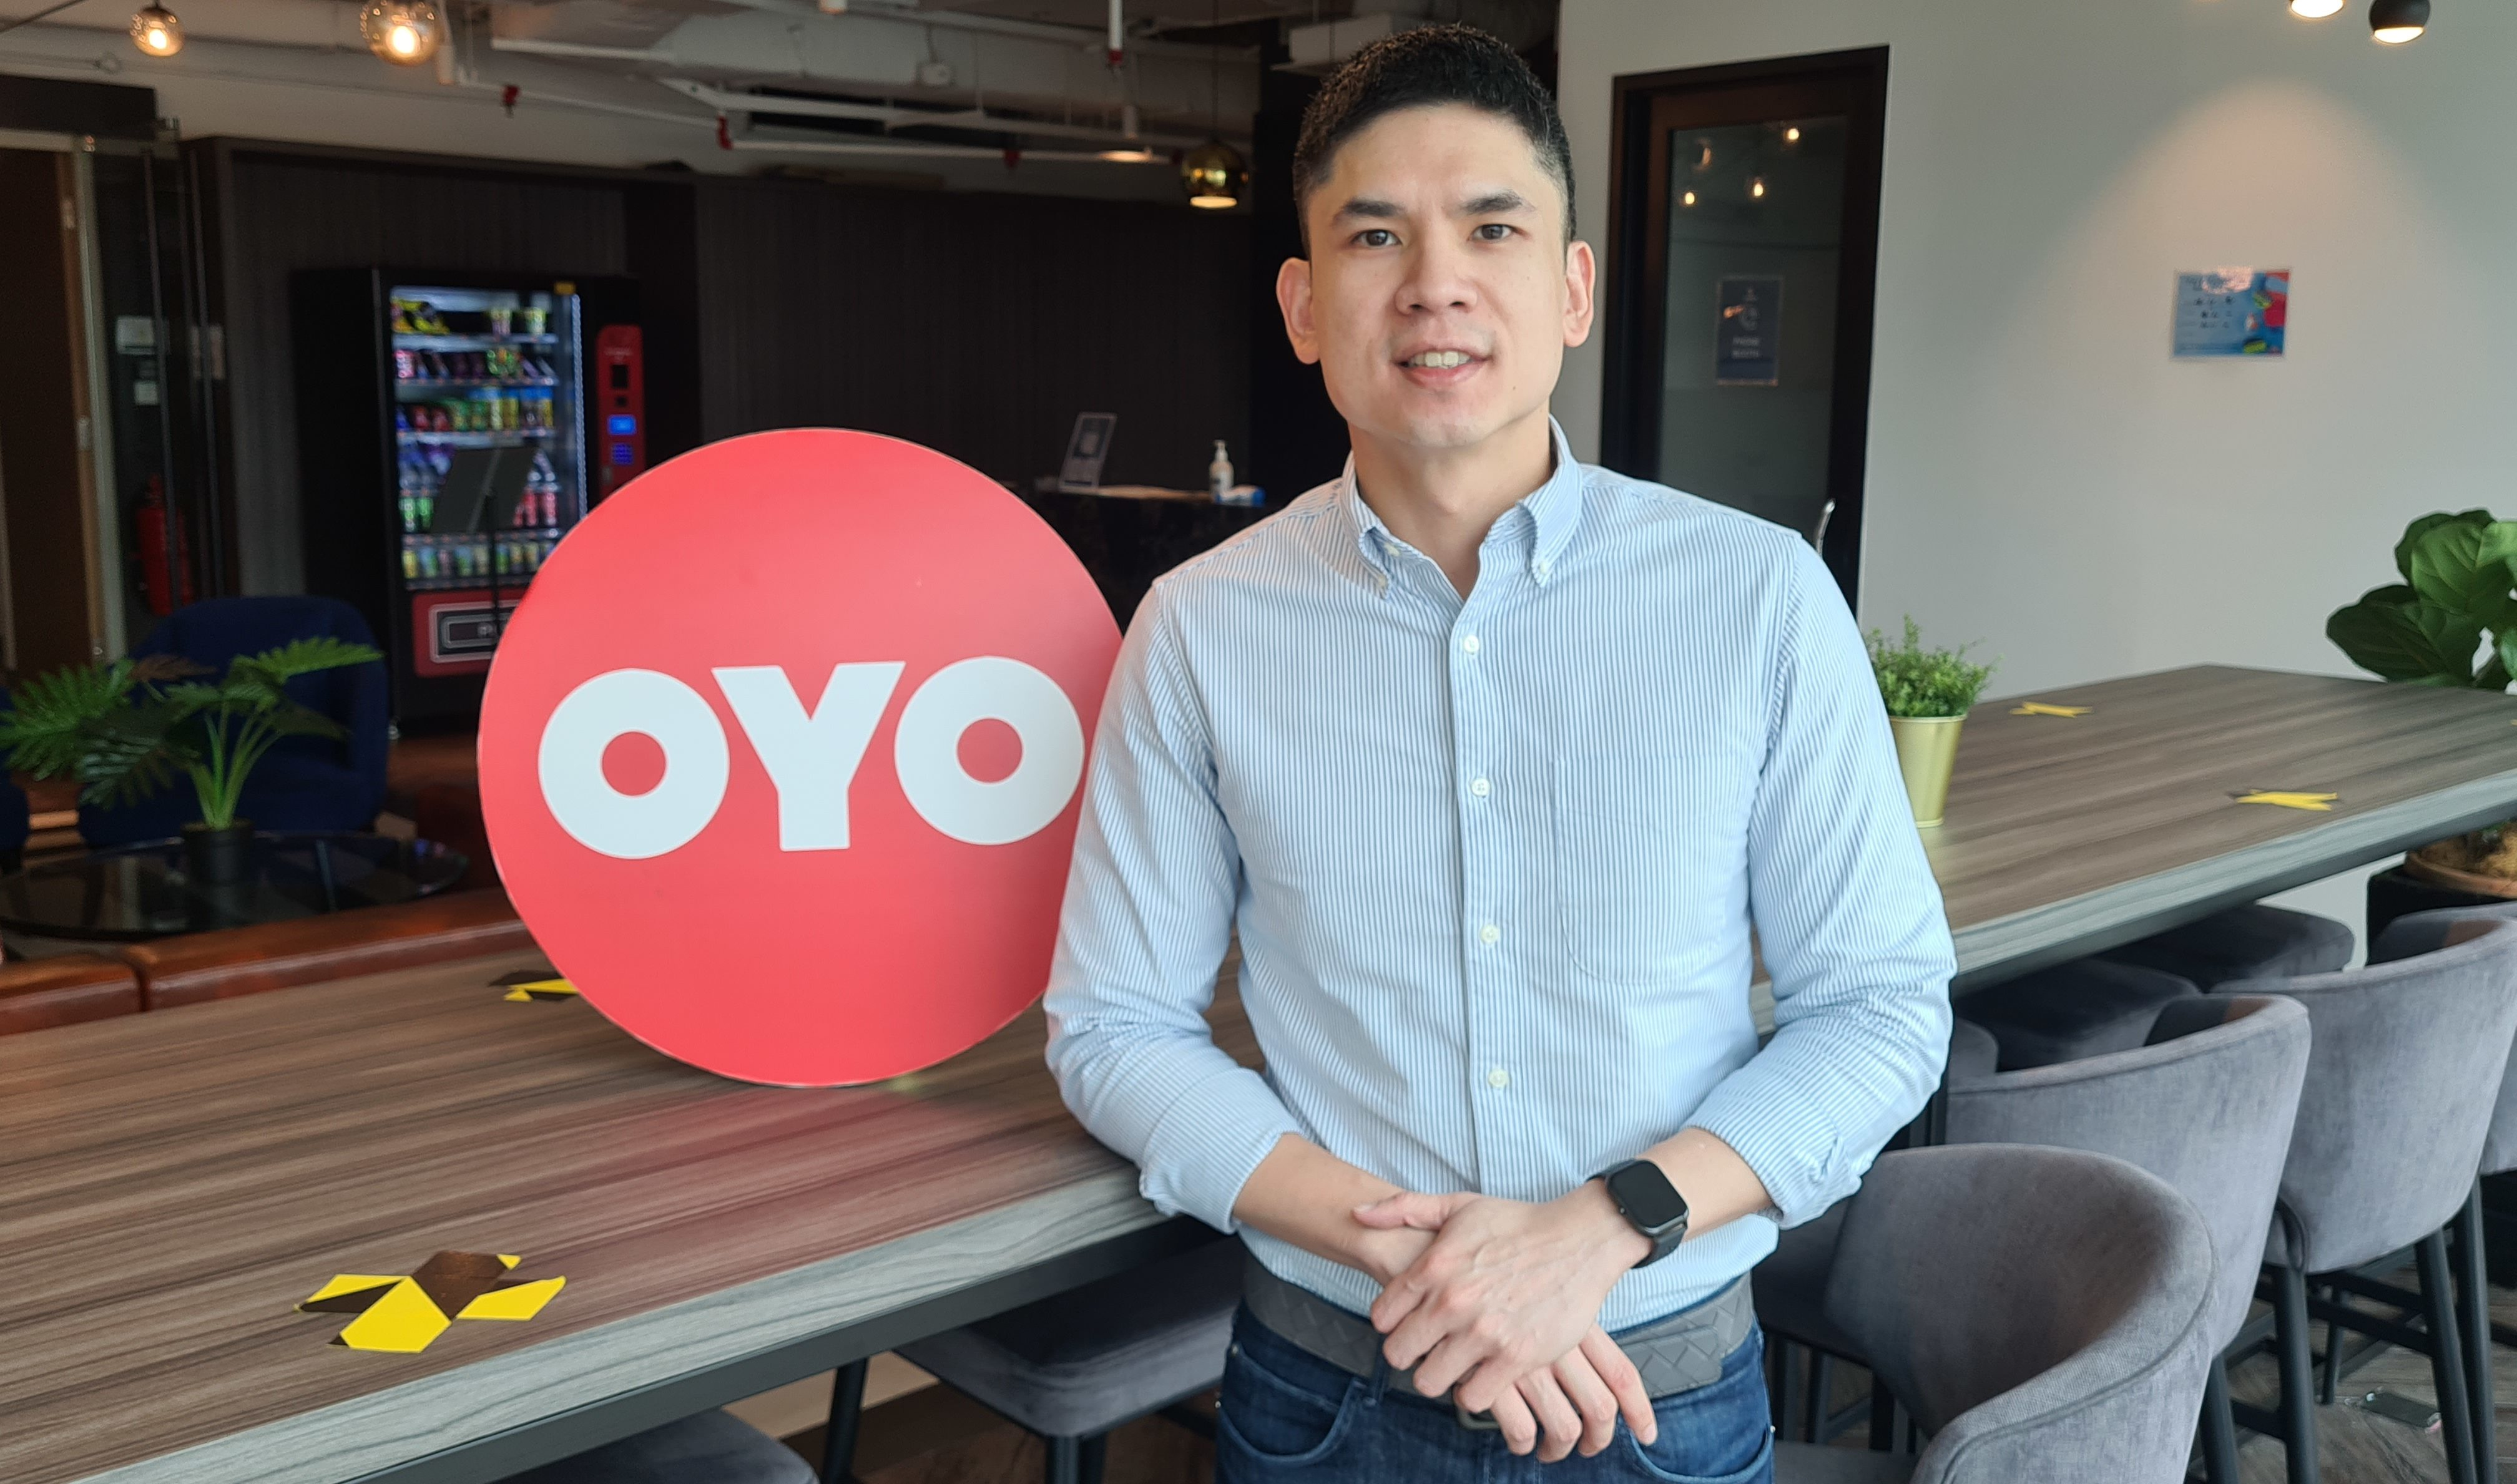 #StartupOfTheMonth: How OYO Hotels Can Aid Domestic Tourism